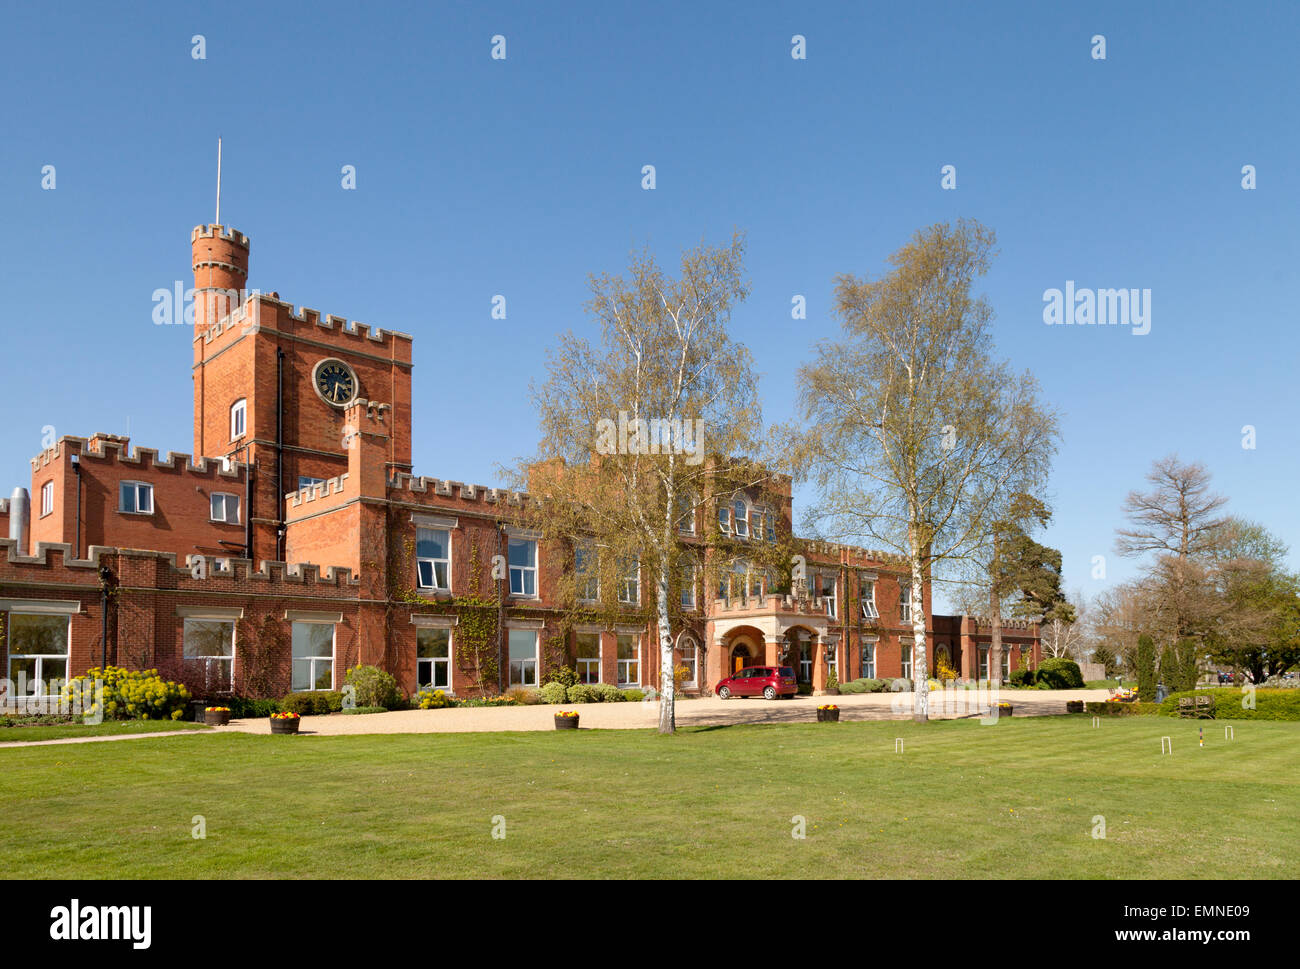 Ragdale Hall Health Hydro and Thermal Spa, Melton Mowbray, Leicestershire, UK - Stock Image